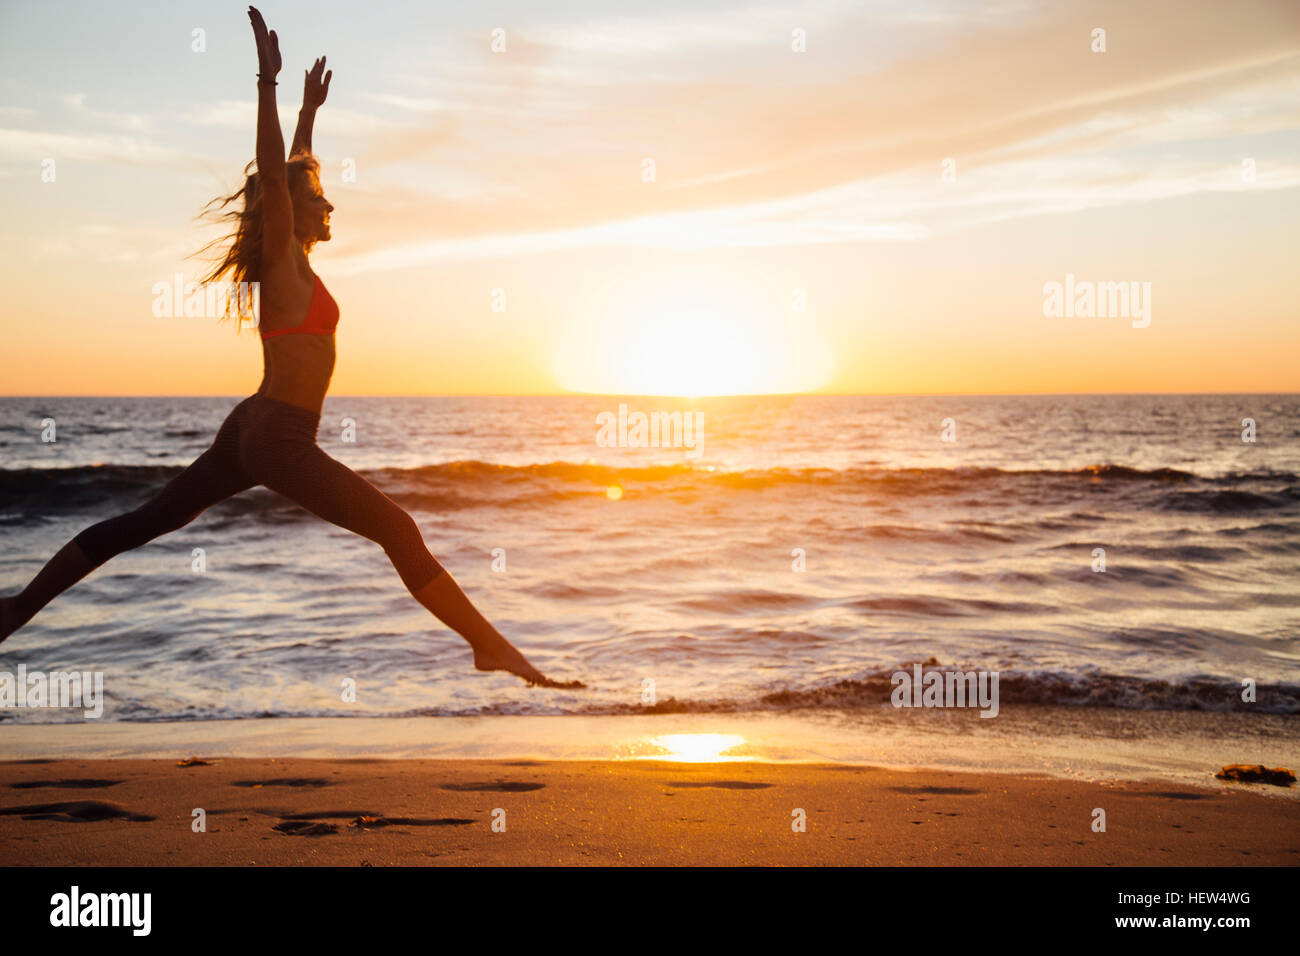 Woman leaping in mid air on beach at sunrise - Stock Image